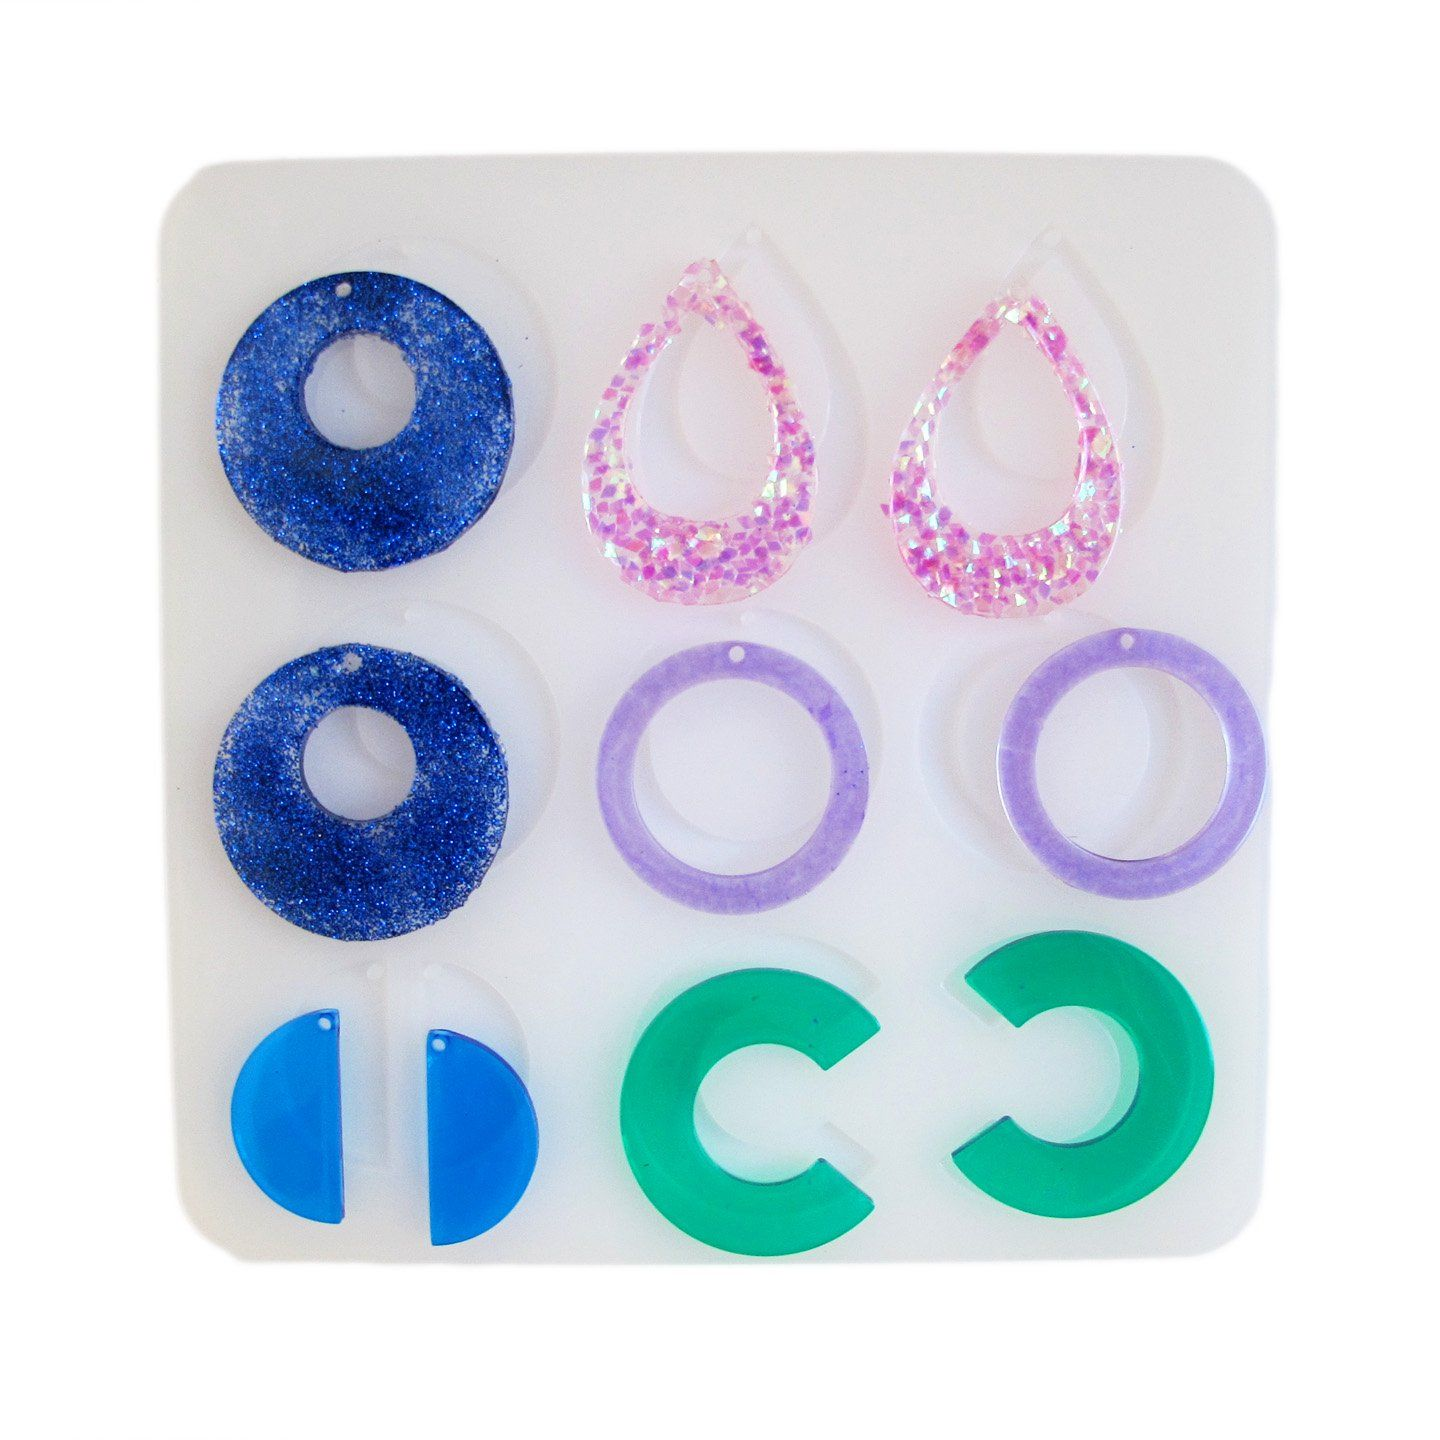 Silicone earrings mold - multiple resin earring designs - DIY jewelry